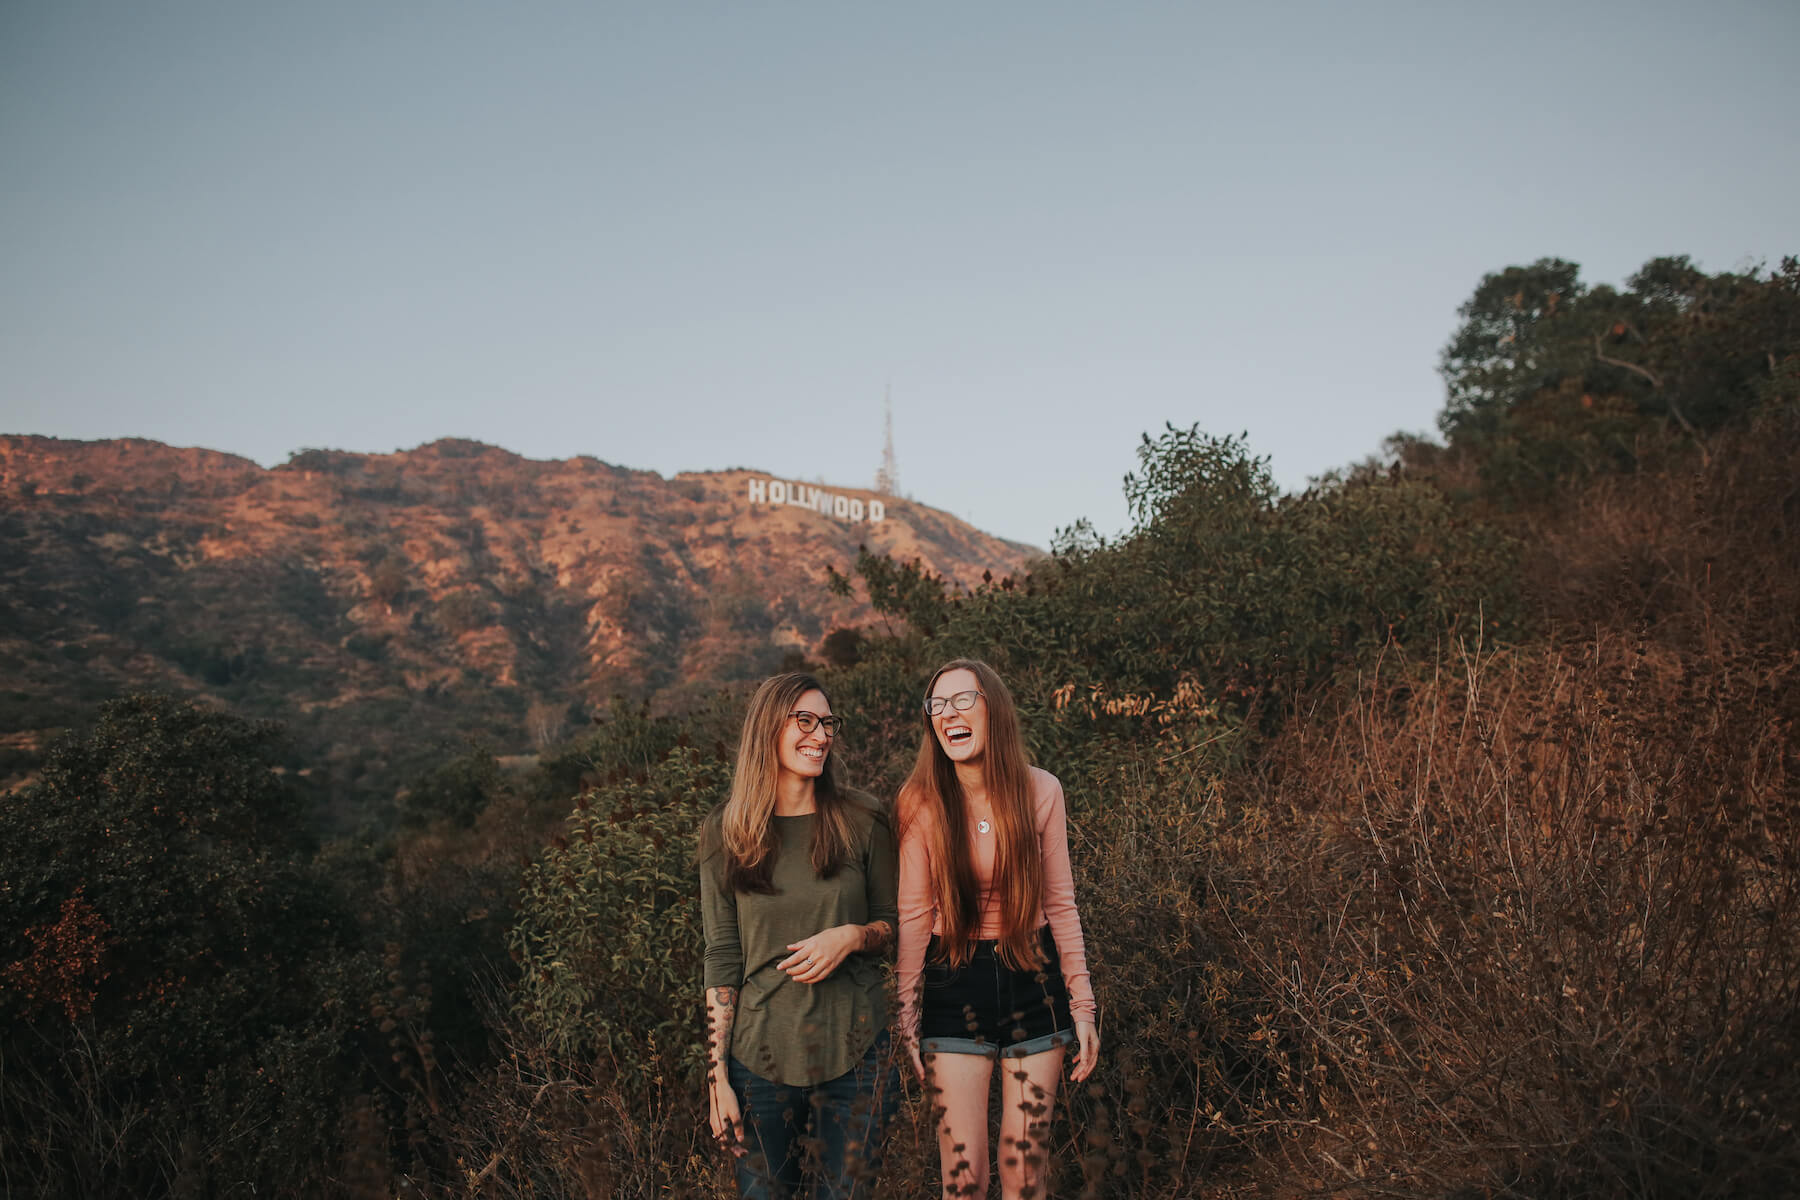 two girls standing and laughing with the Hollywood sign in the background in Los Angeles, California